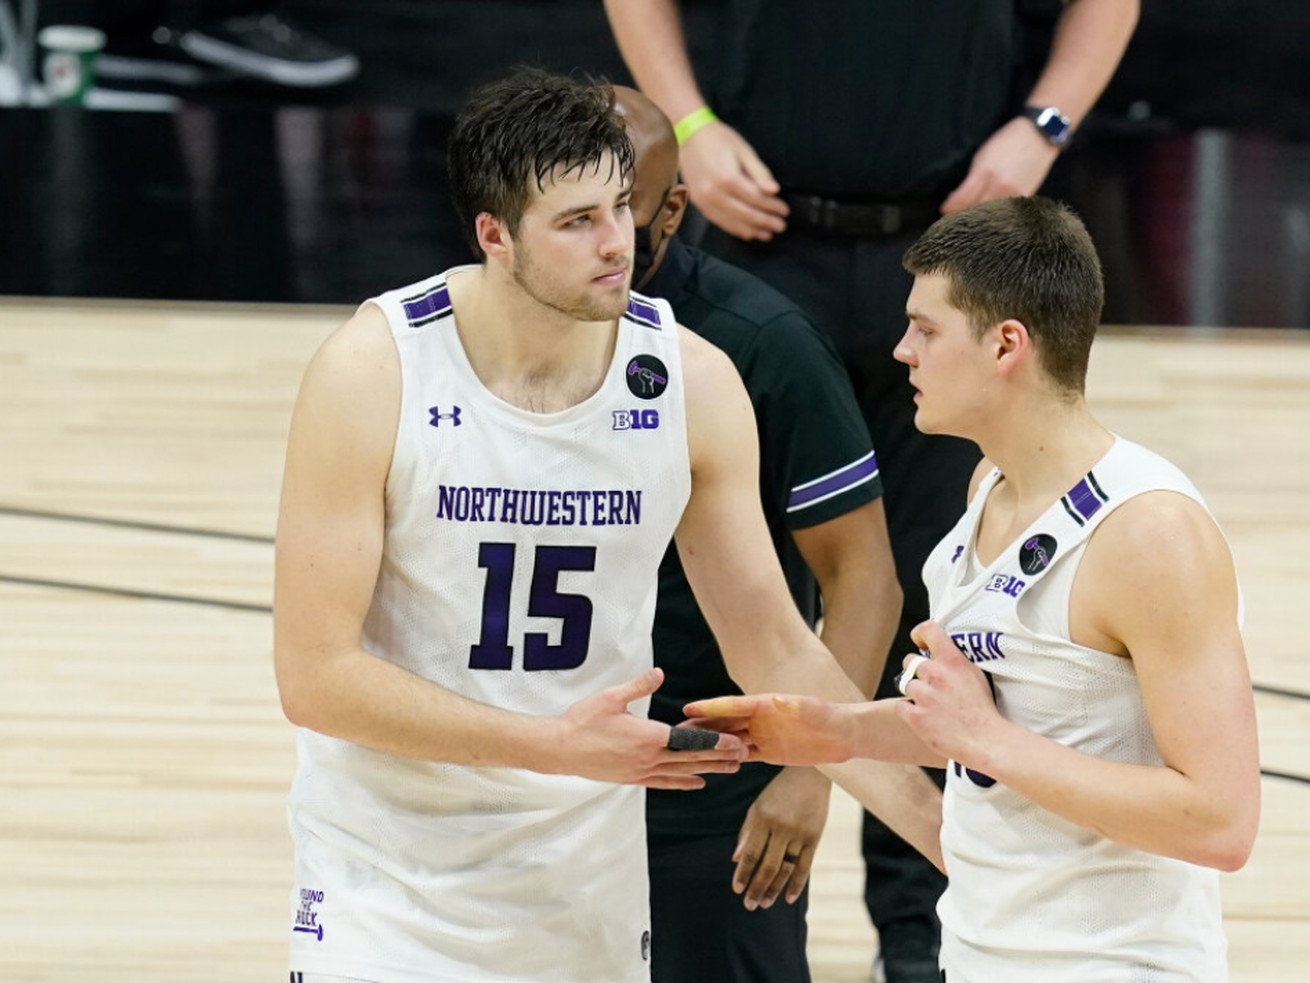 Northwestern vs. Minnesota